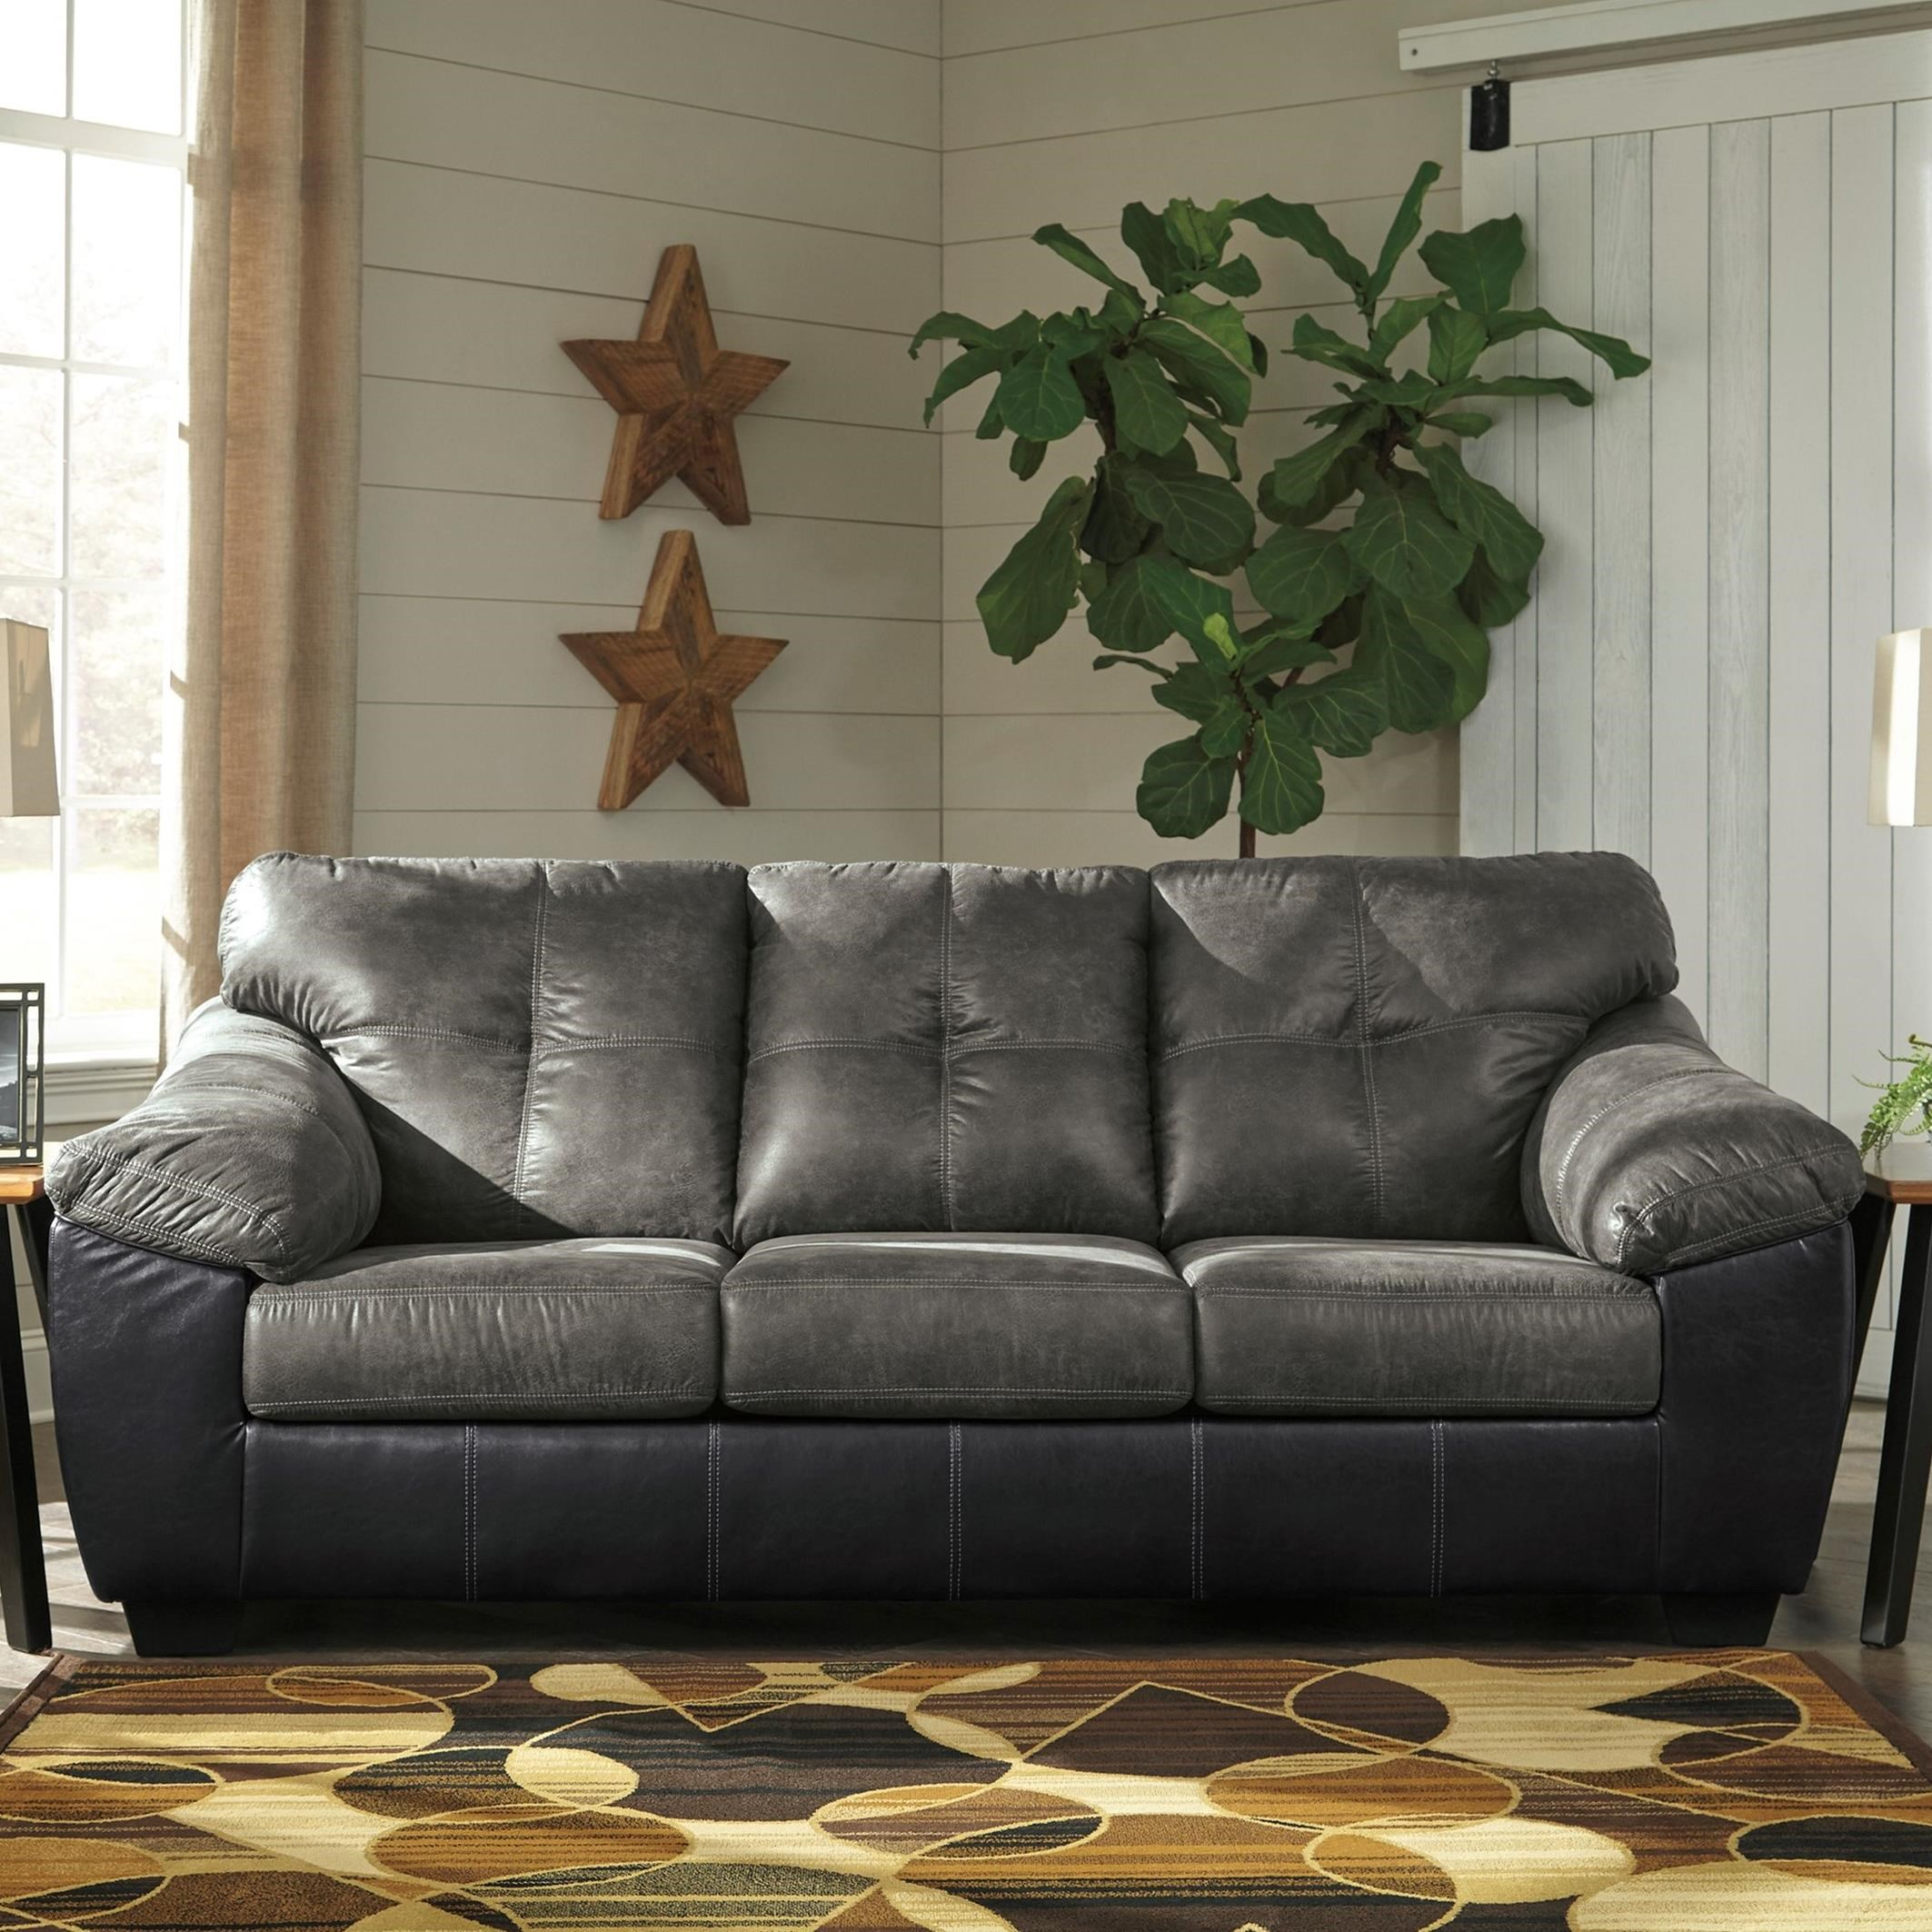 Benchcraft Gregale Two Tone Faux Leather Sofa With Pillow